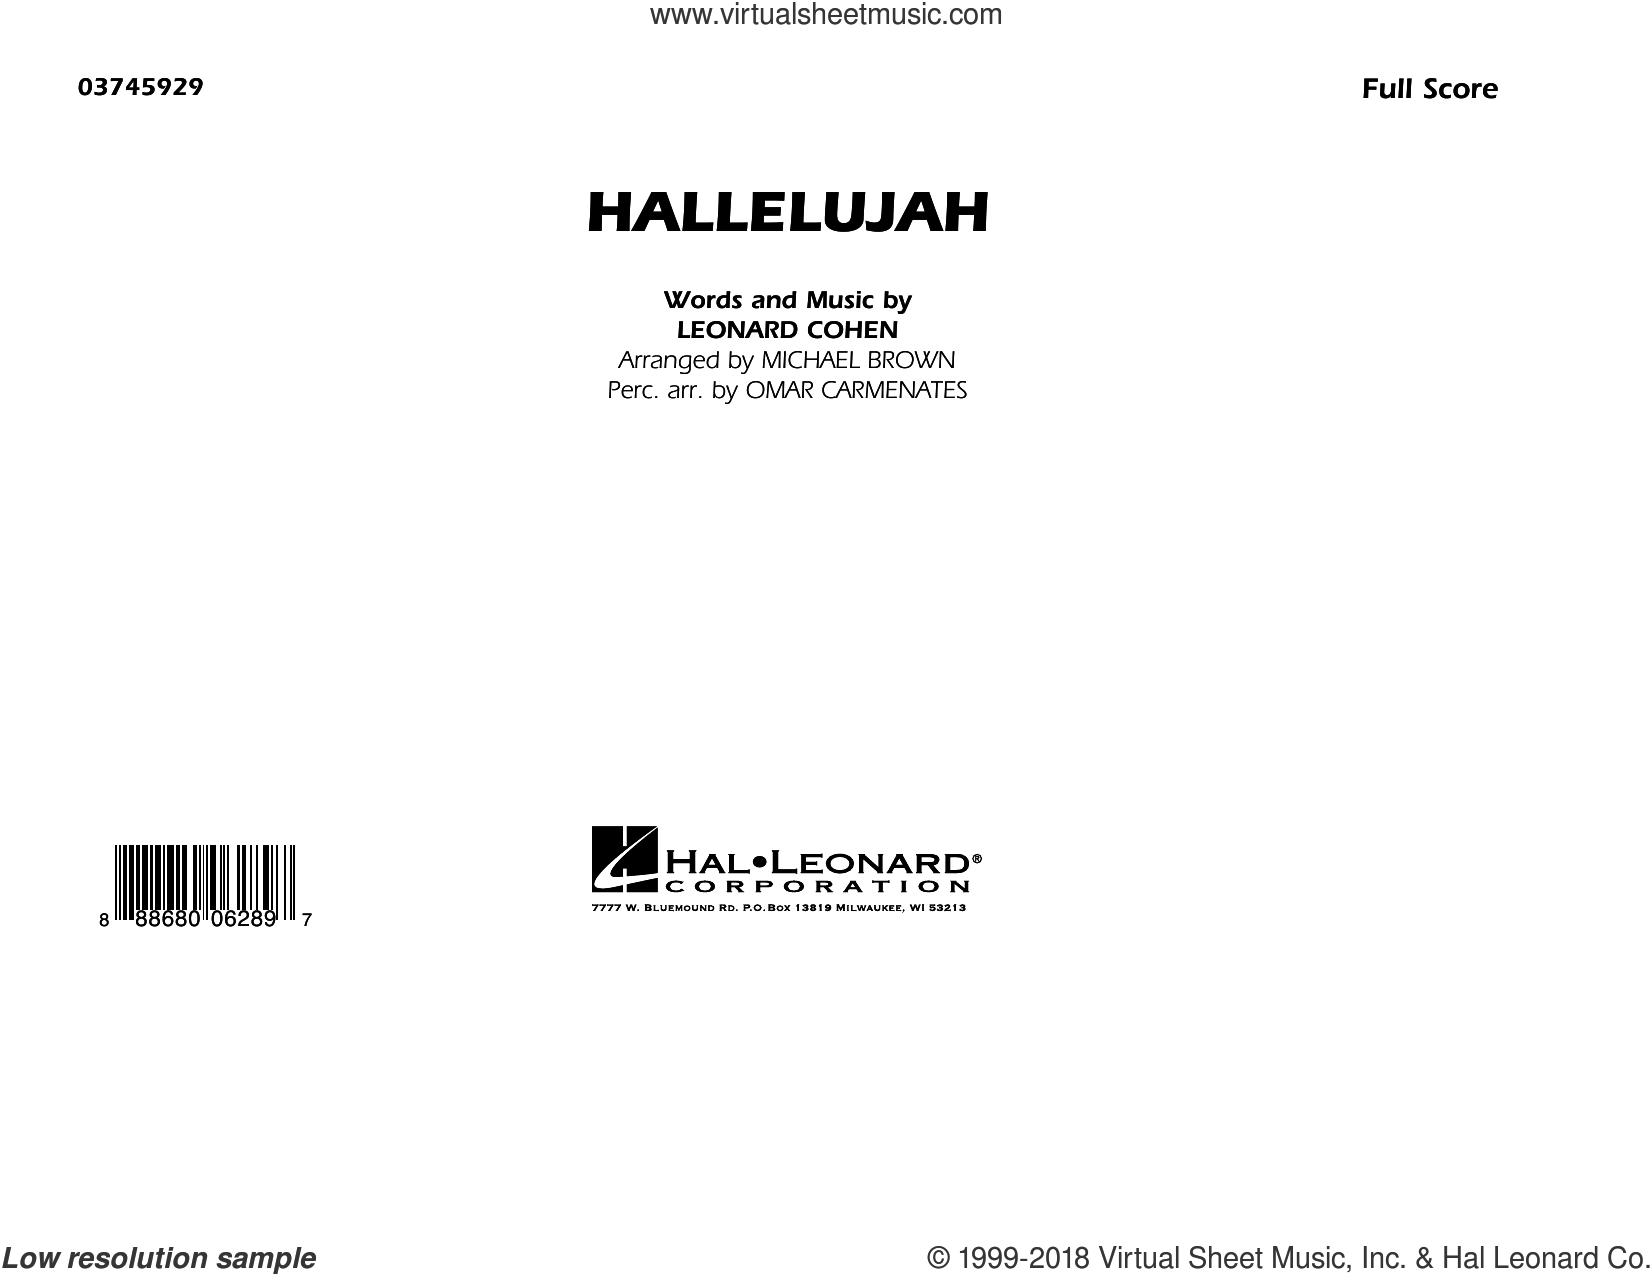 Hallelujah (COMPLETE) sheet music for marching band by Michael Brown, Justin Timberlake & Matt Morris featuring Charlie Sexton, Lee DeWyze and Leonard Cohen, intermediate skill level